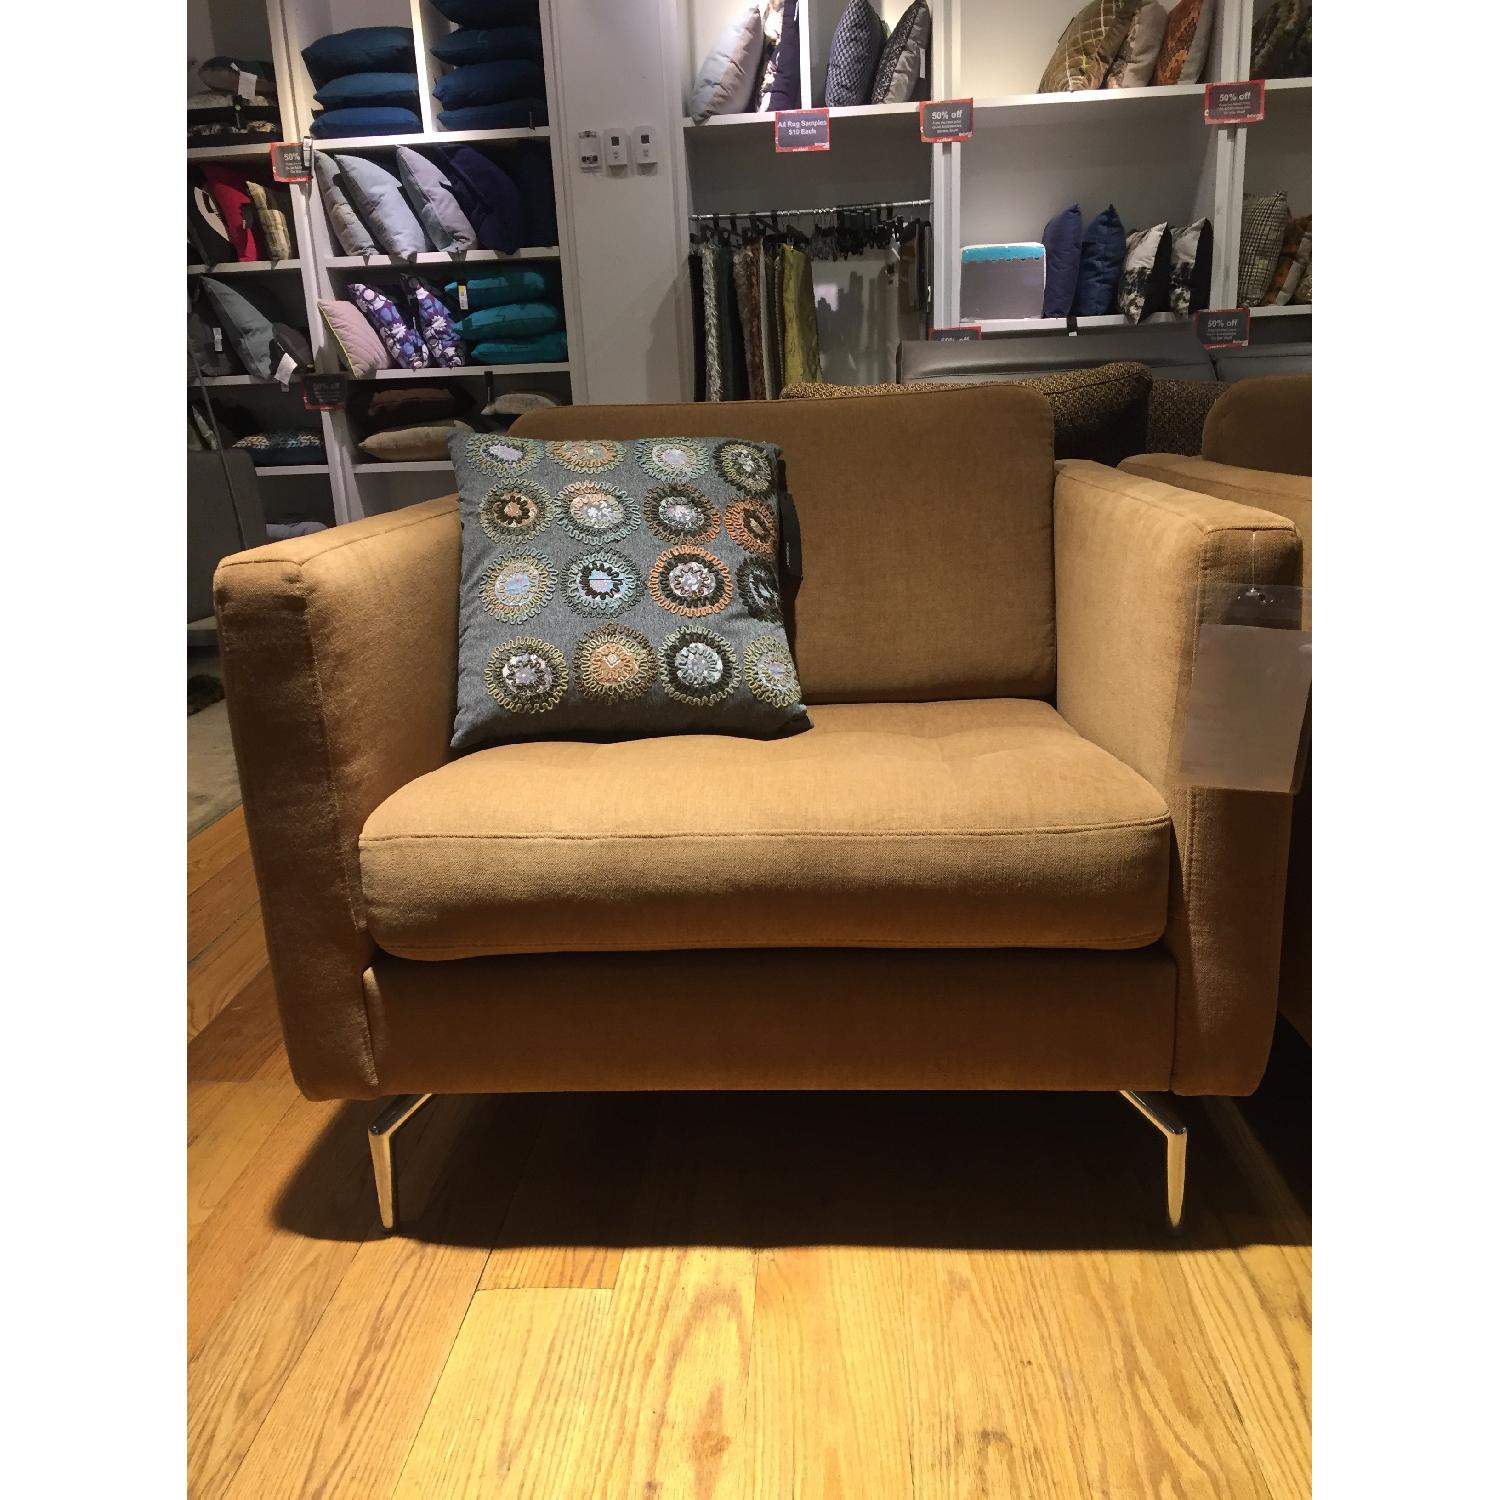 BoConcept Oasaka Armchair w/ Tufted Seat in Caramel Frisco Fabric - image-2